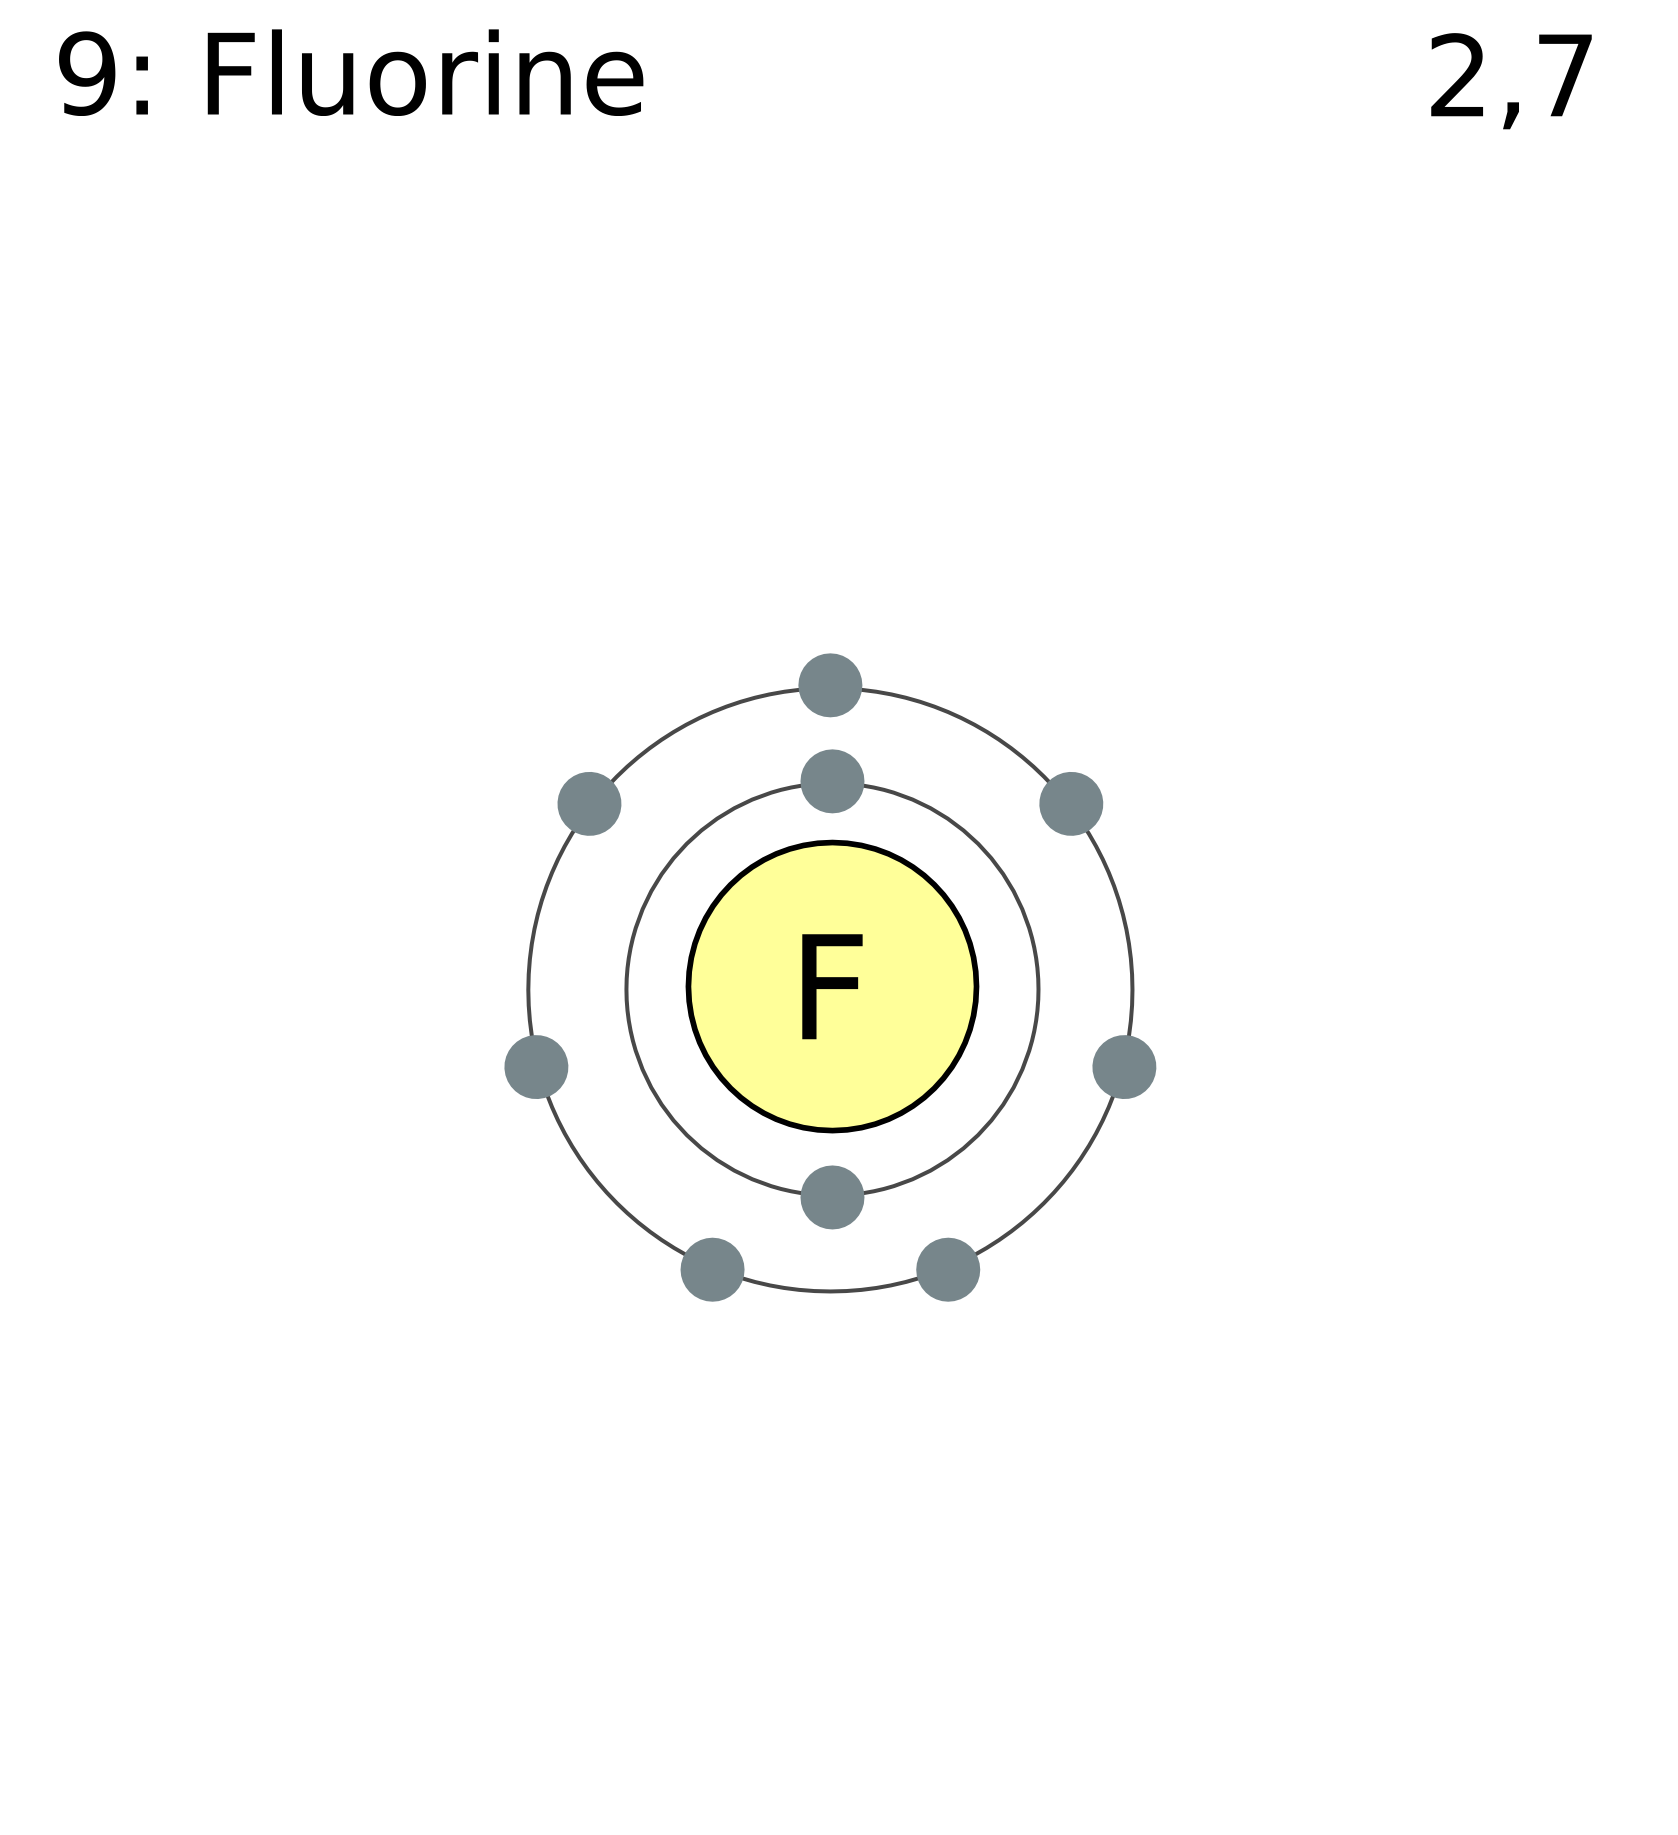 Fluorine the element you can smile for the benefits of fluorine fluorine the element you can smile for gamestrikefo Choice Image